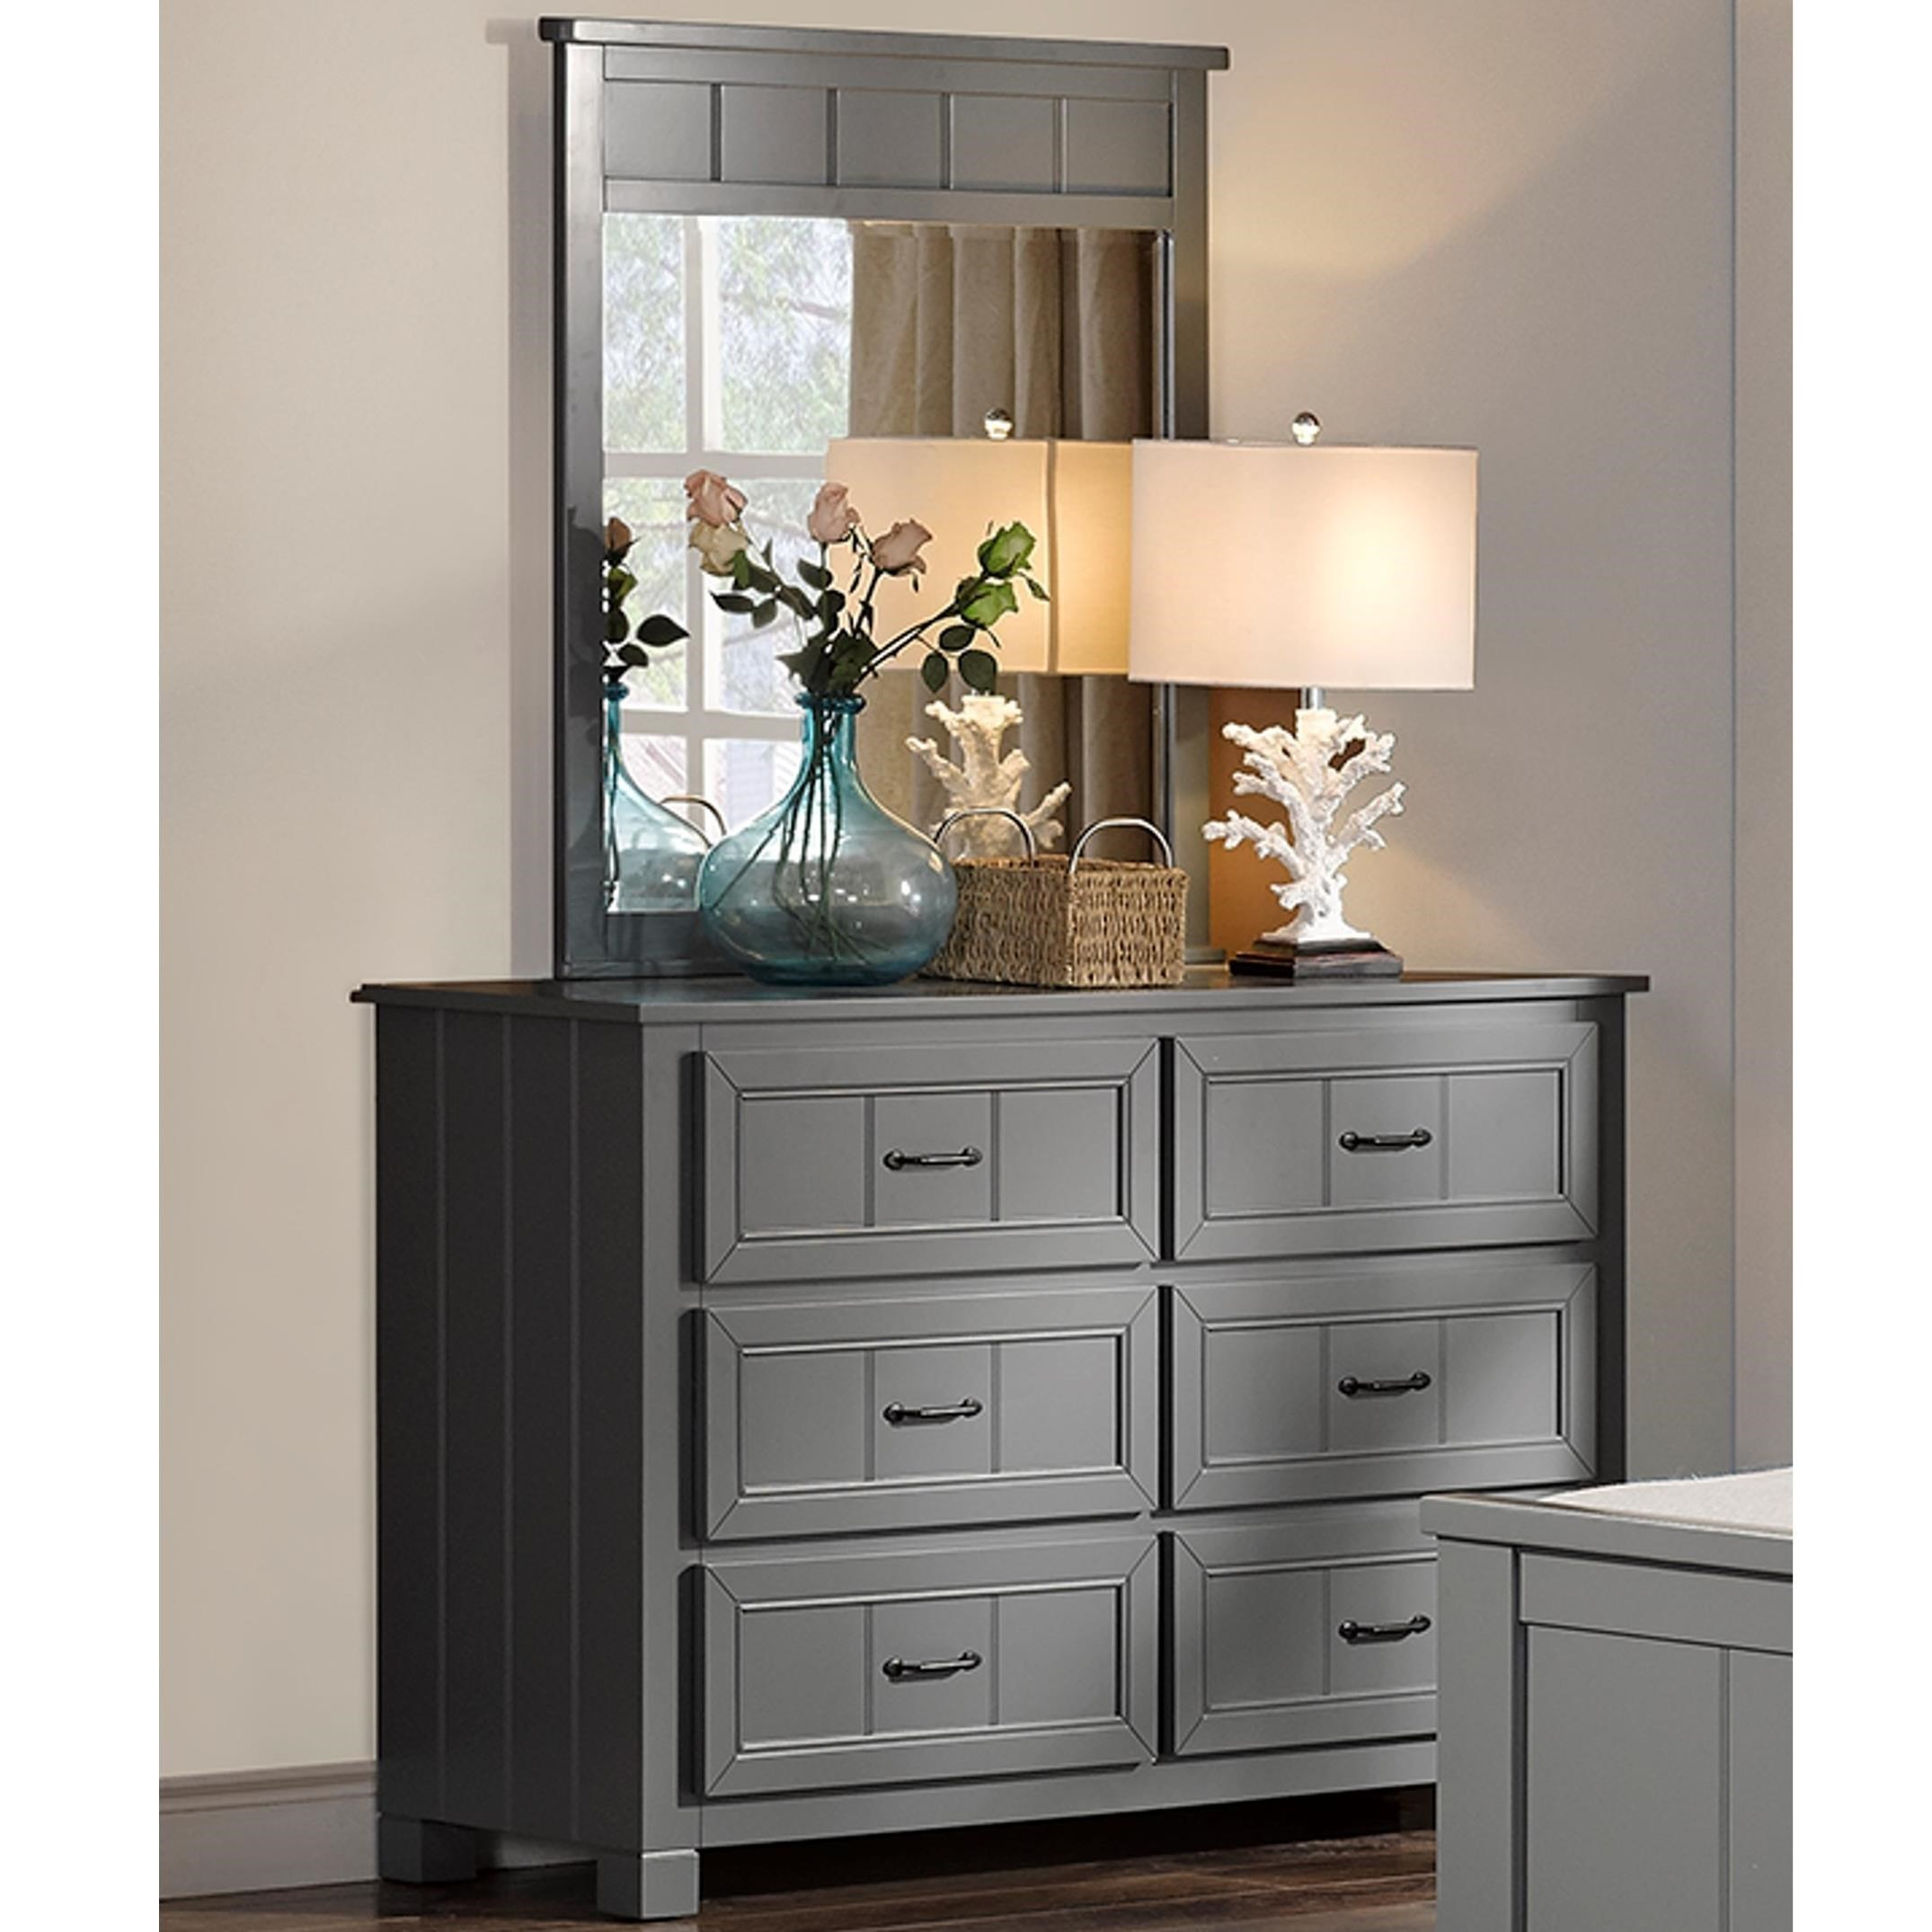 Taylor Youth Bedroom Casual 6 Drawer Dresser And Mirror By New Classic